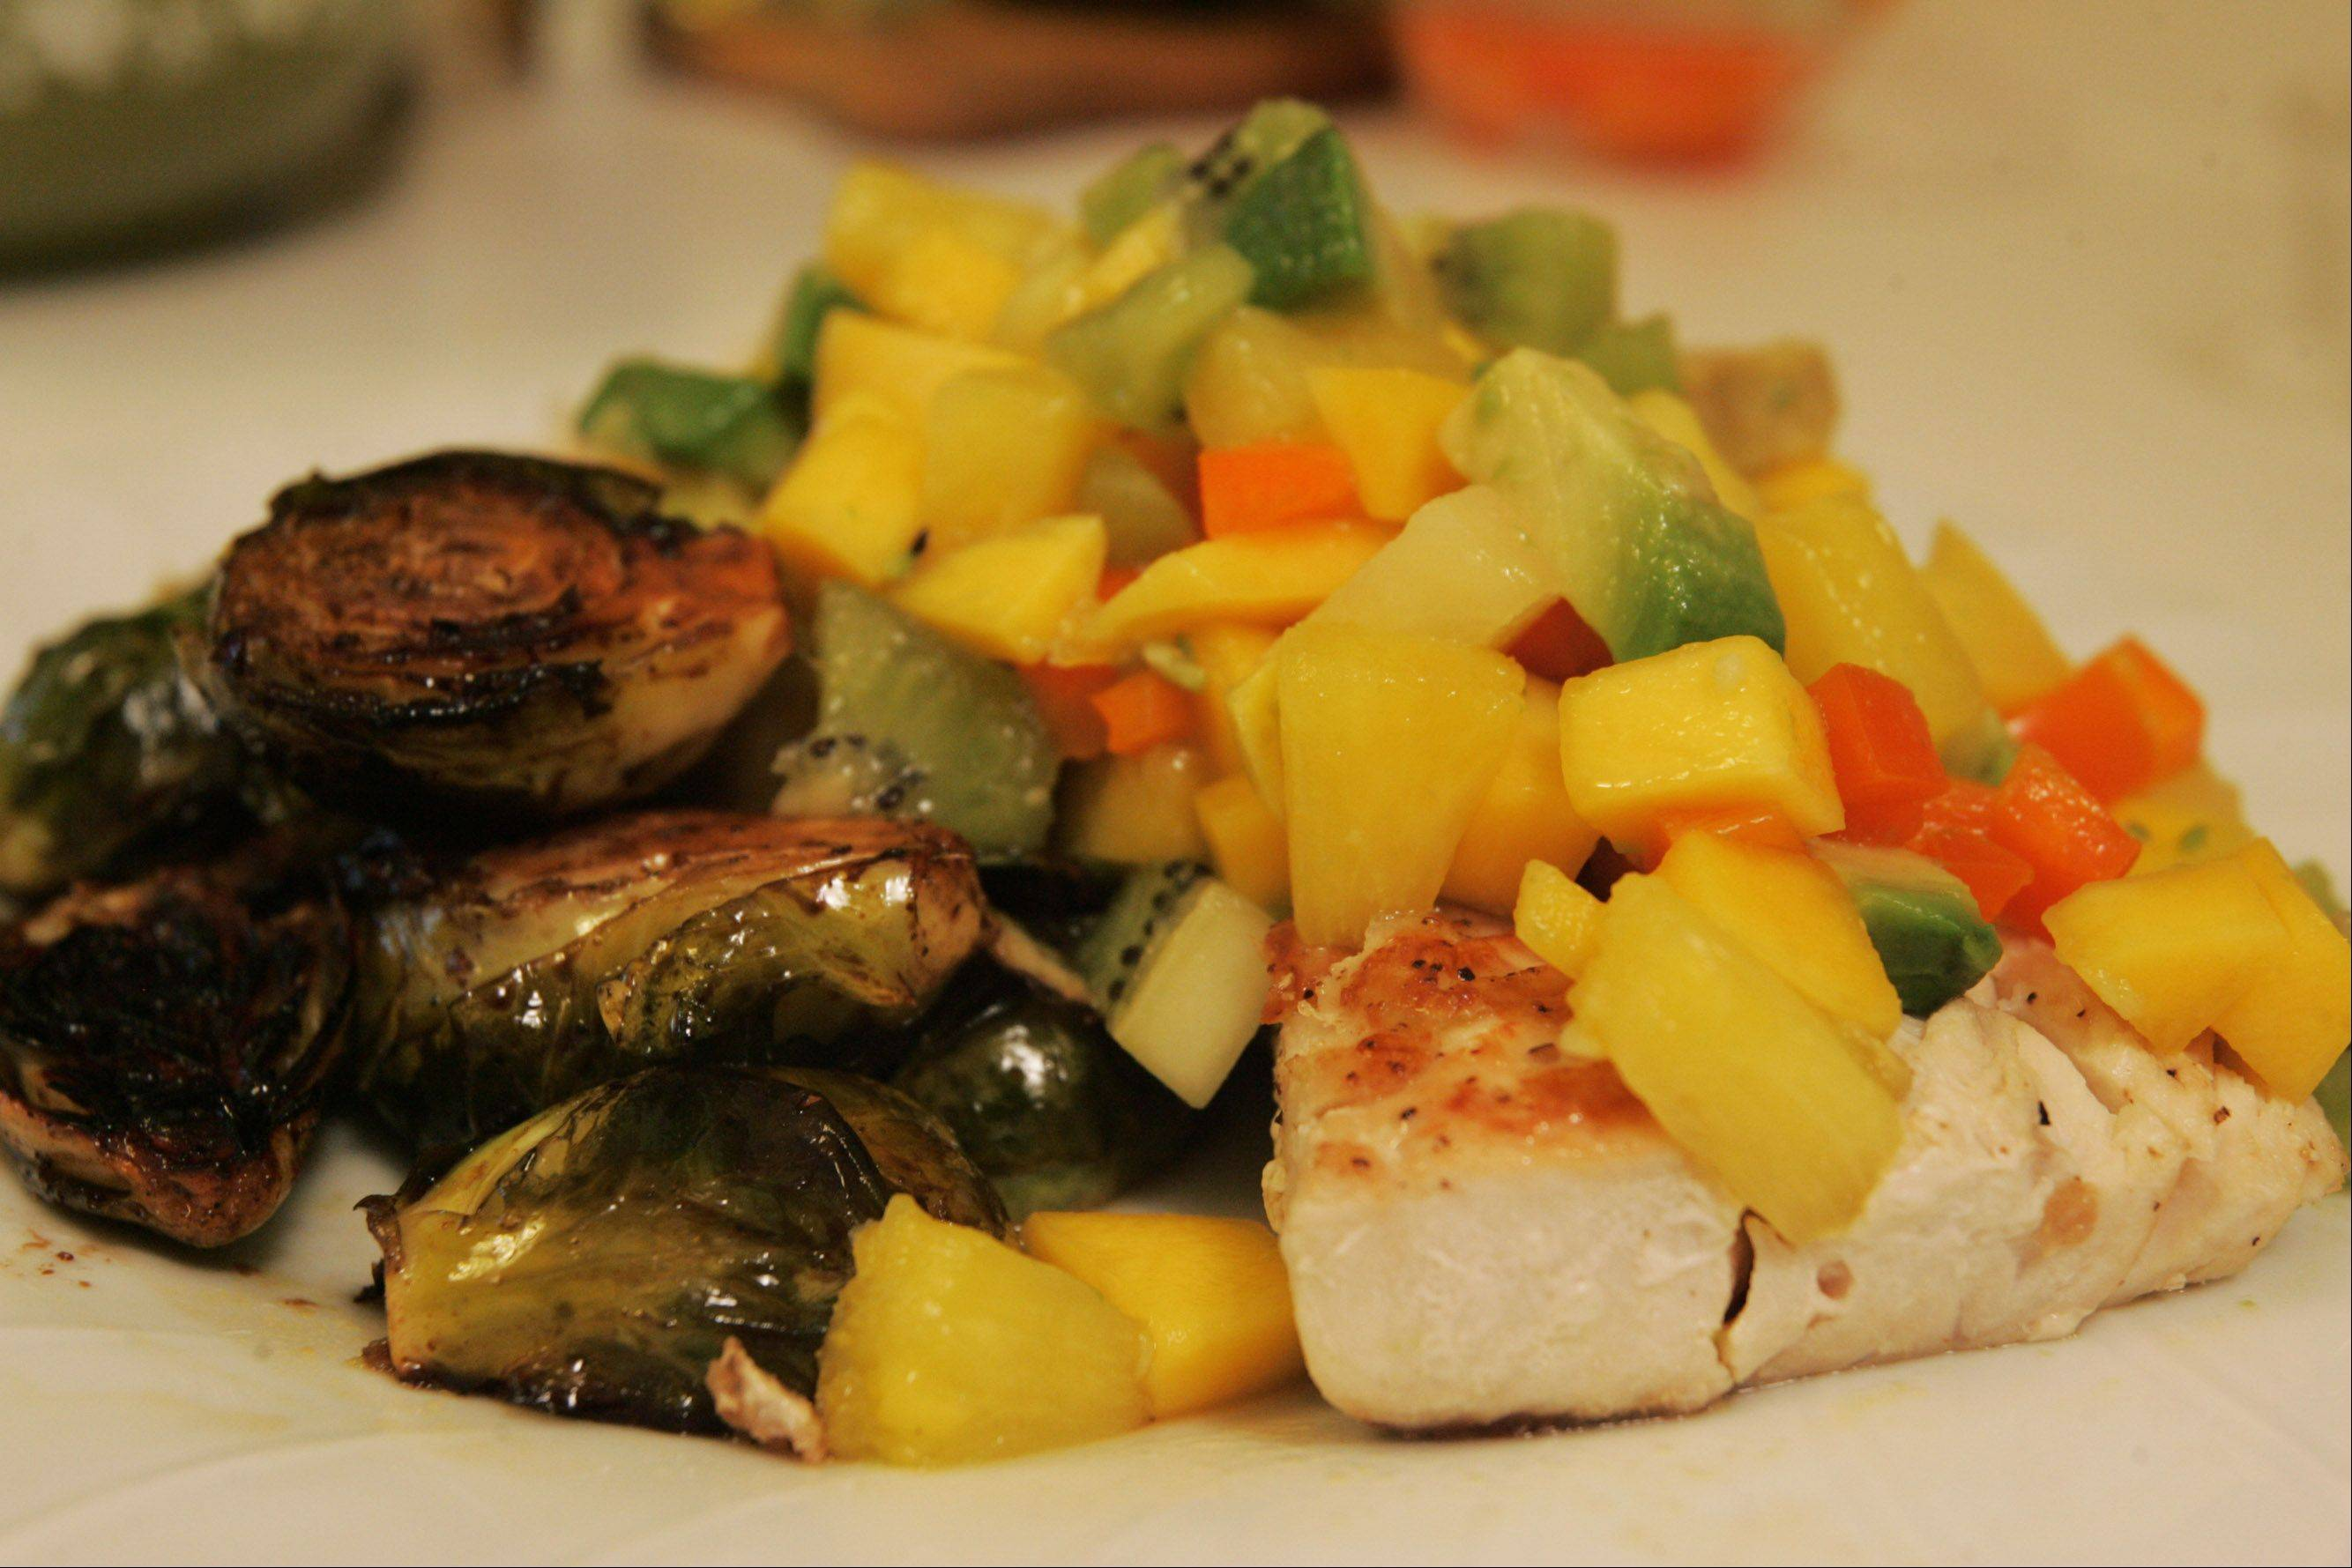 Erica Jensen pairs a tropical salsa with seared mahi-mahi fillets.